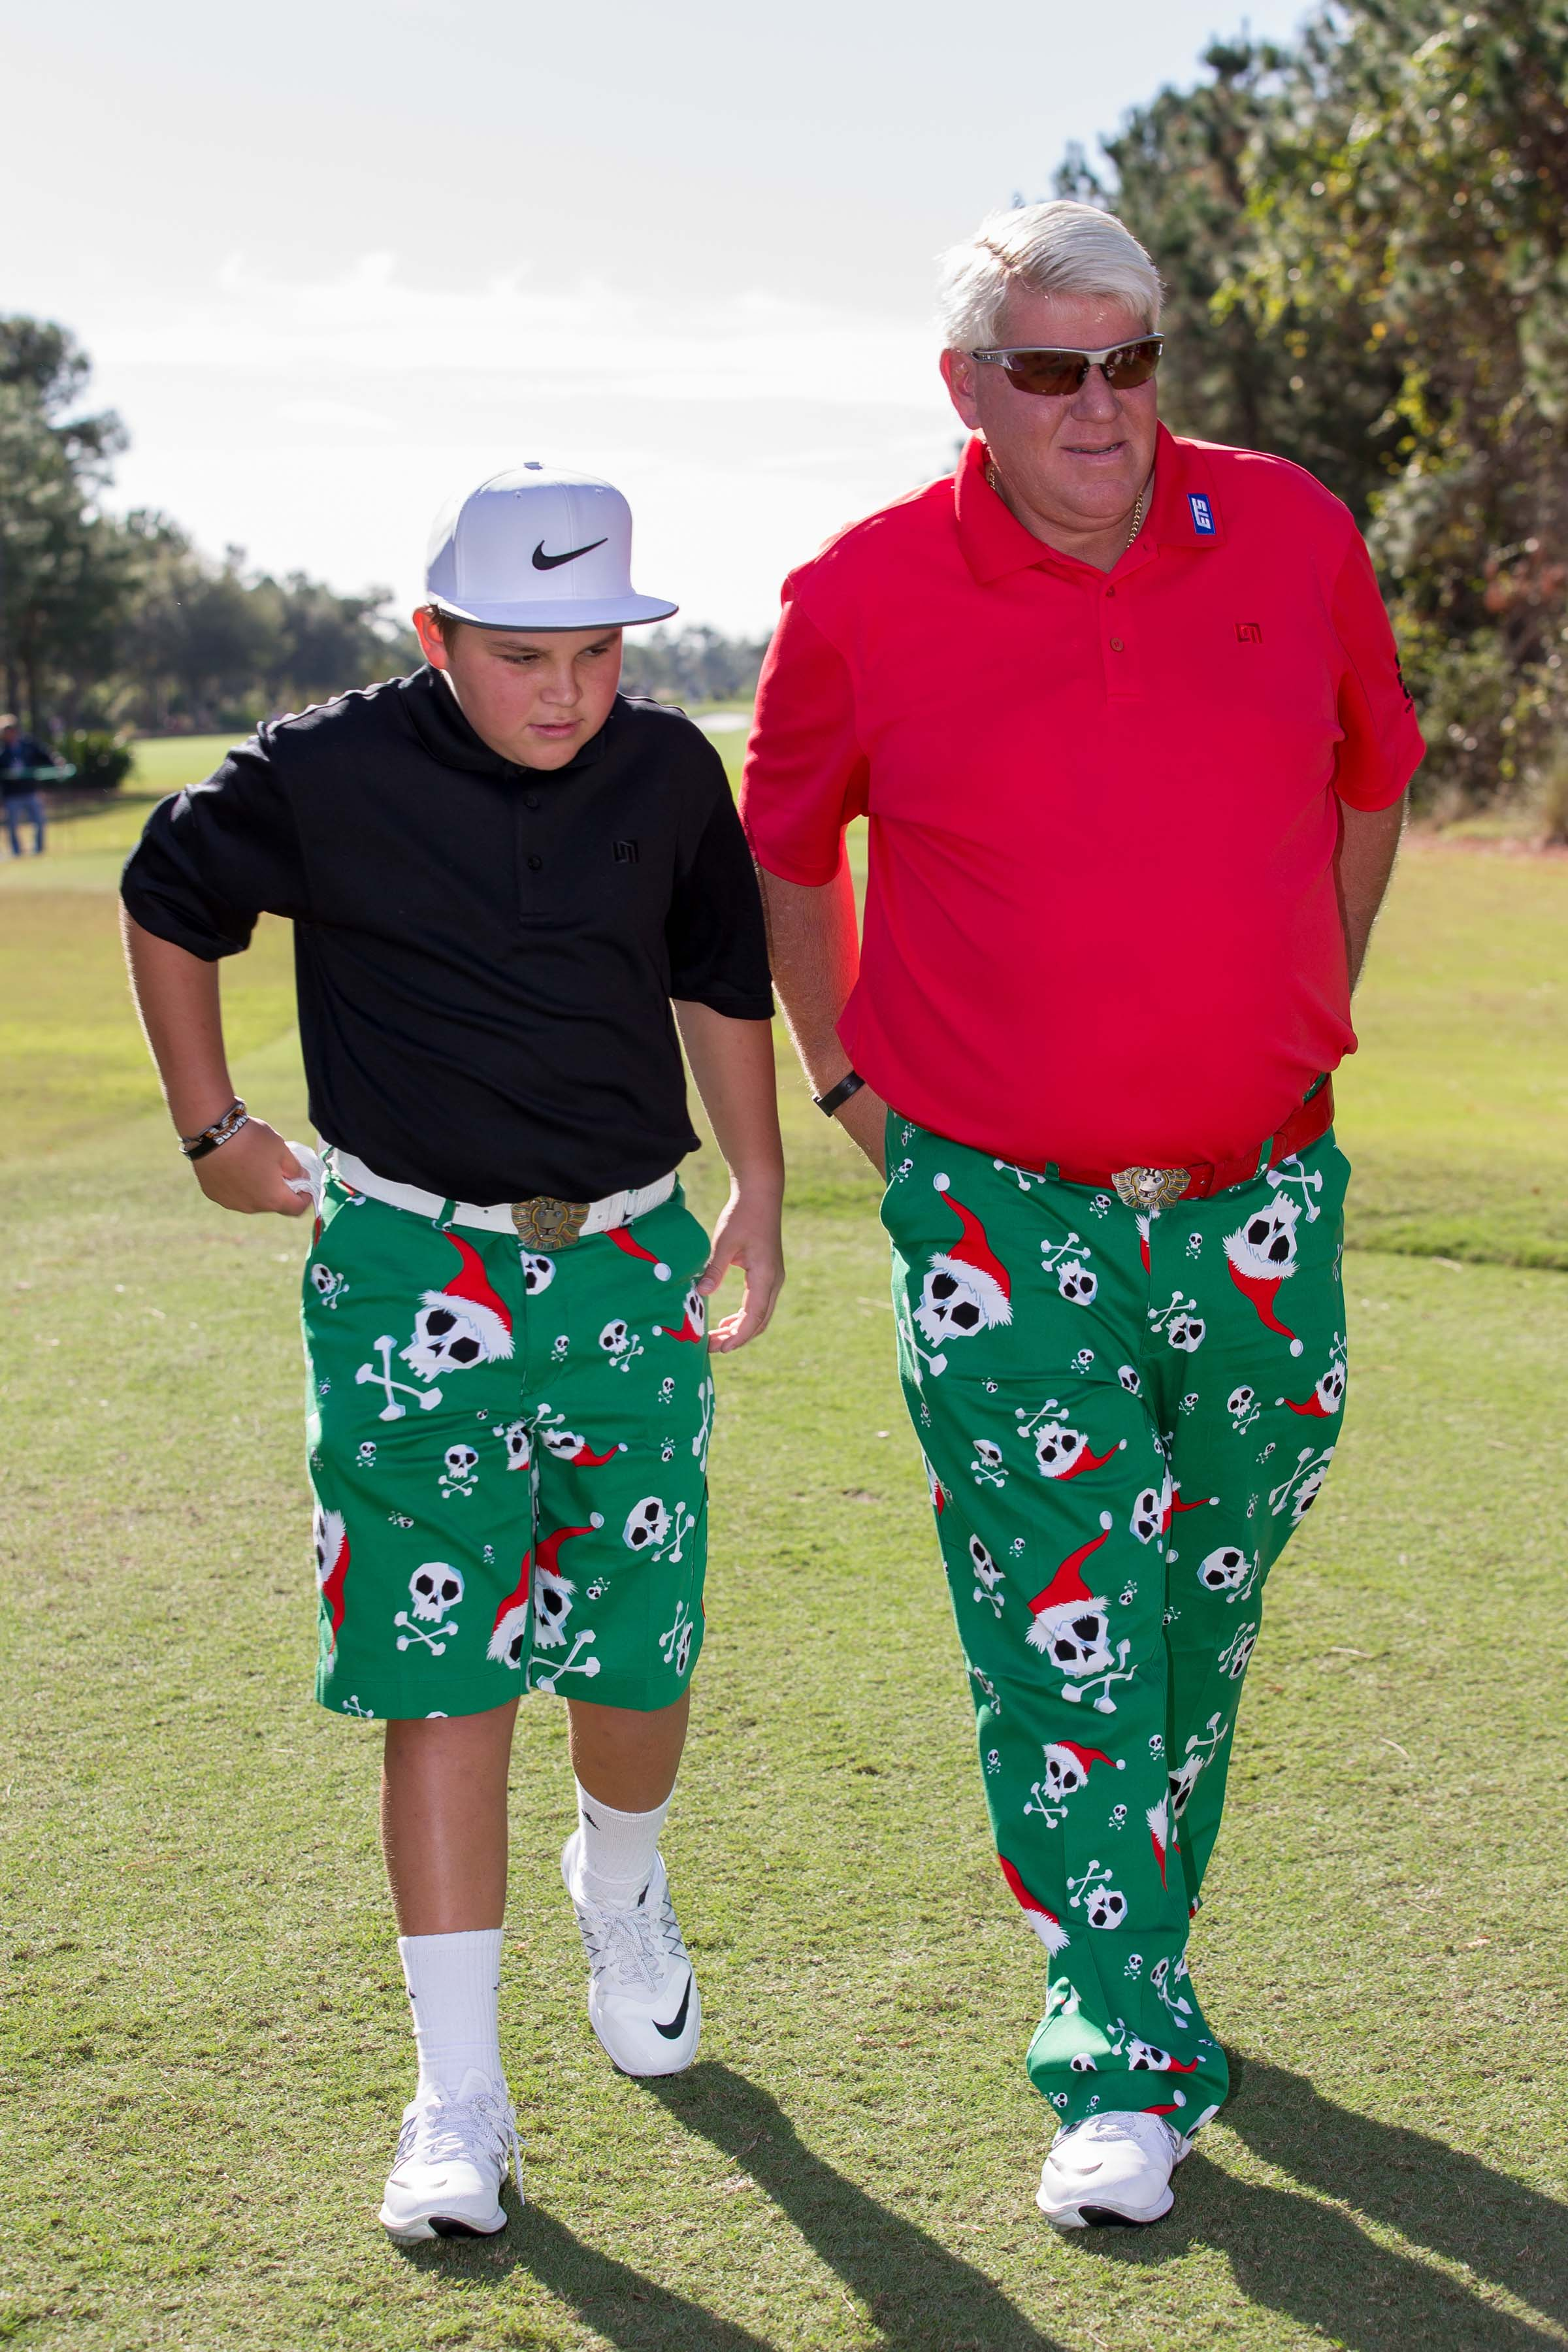 John and Little John Daly